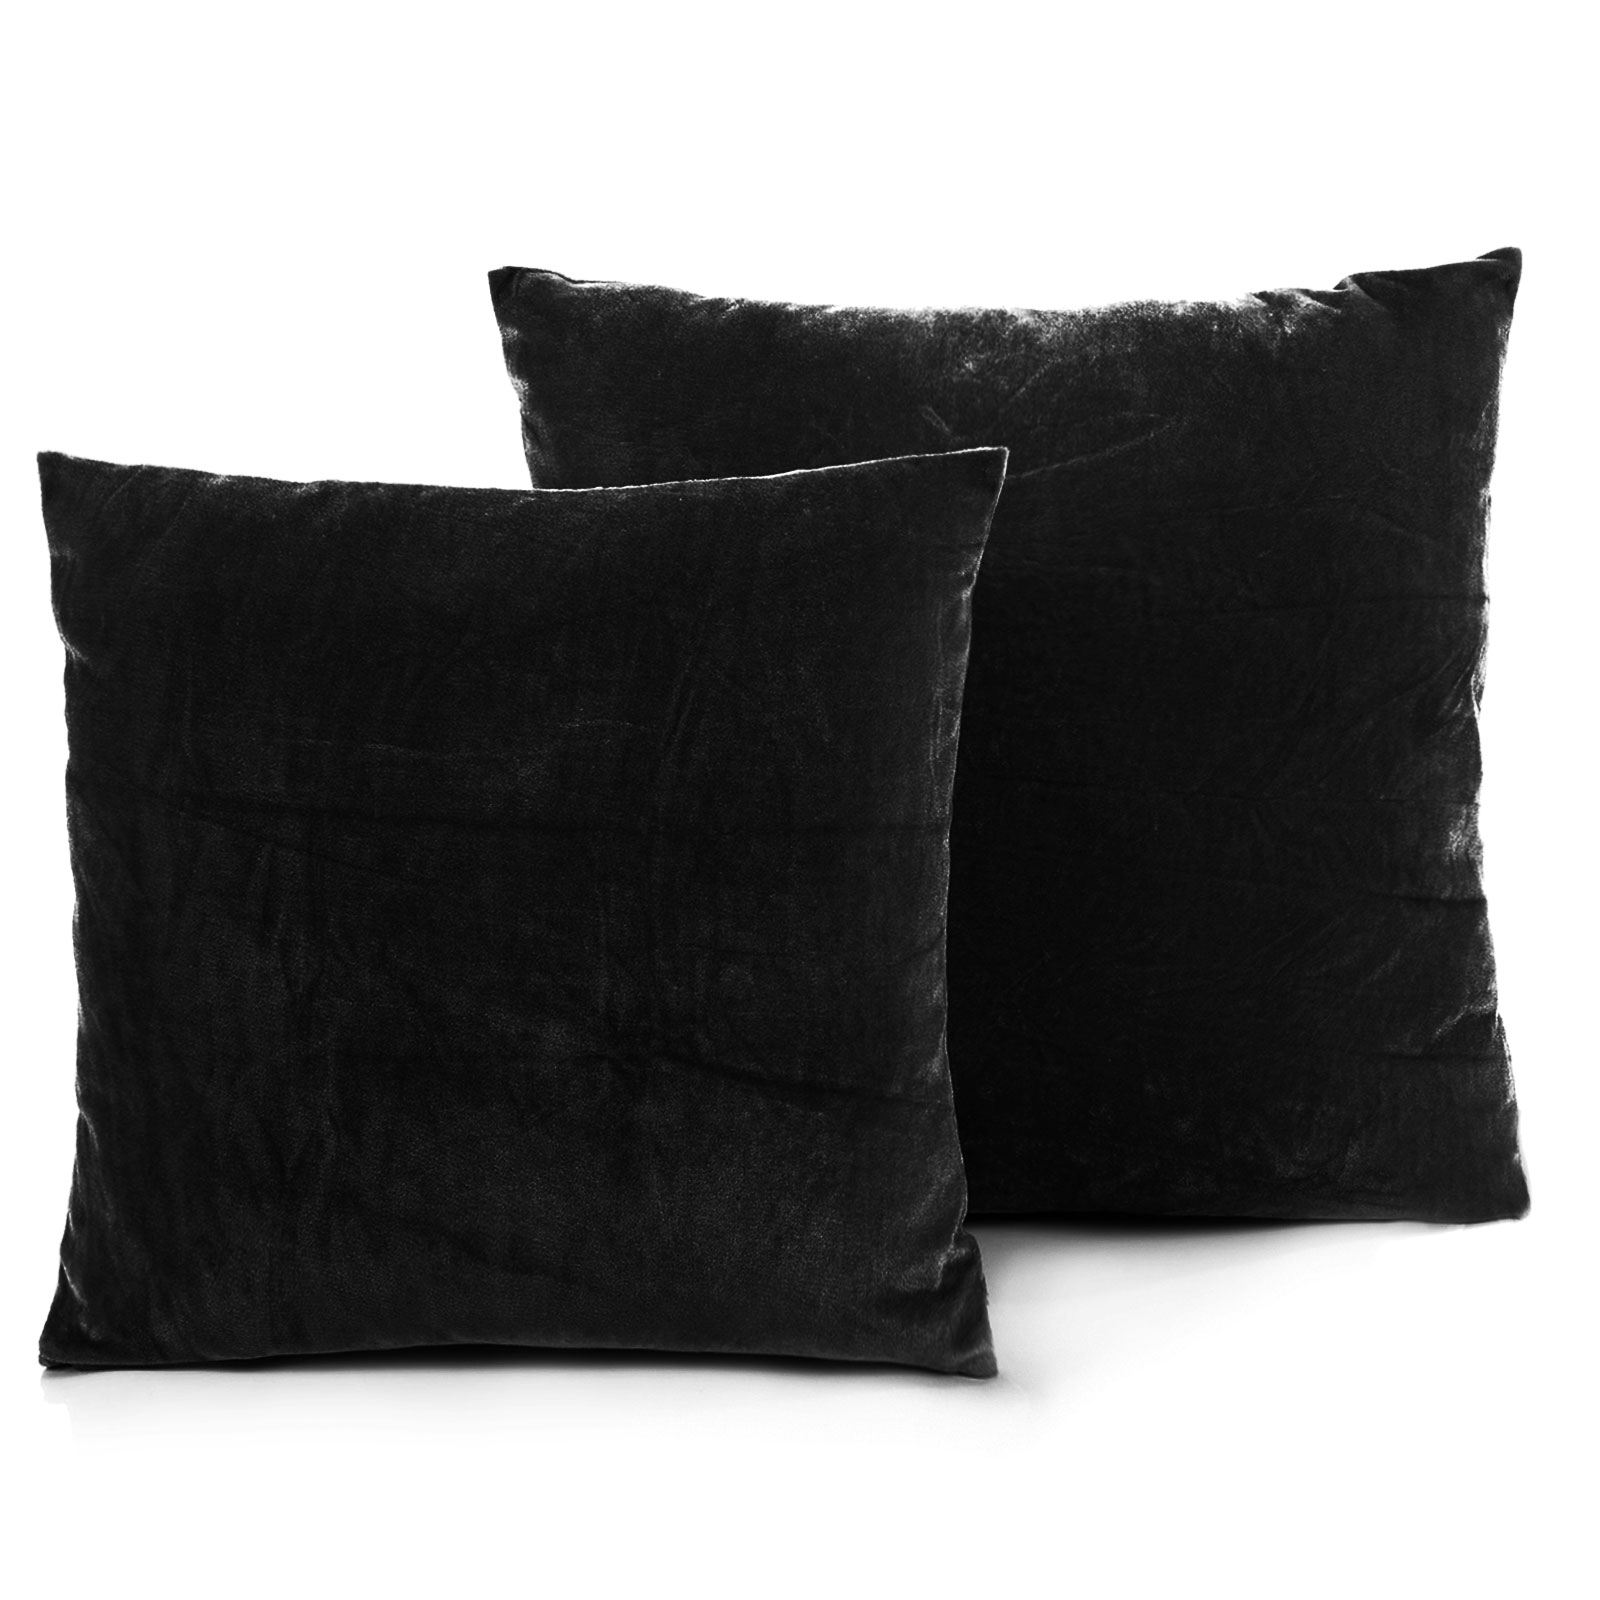 luxe fausse fourrure housse de coussin cas canap oreiller lit d coration velours look 45x45 ebay. Black Bedroom Furniture Sets. Home Design Ideas